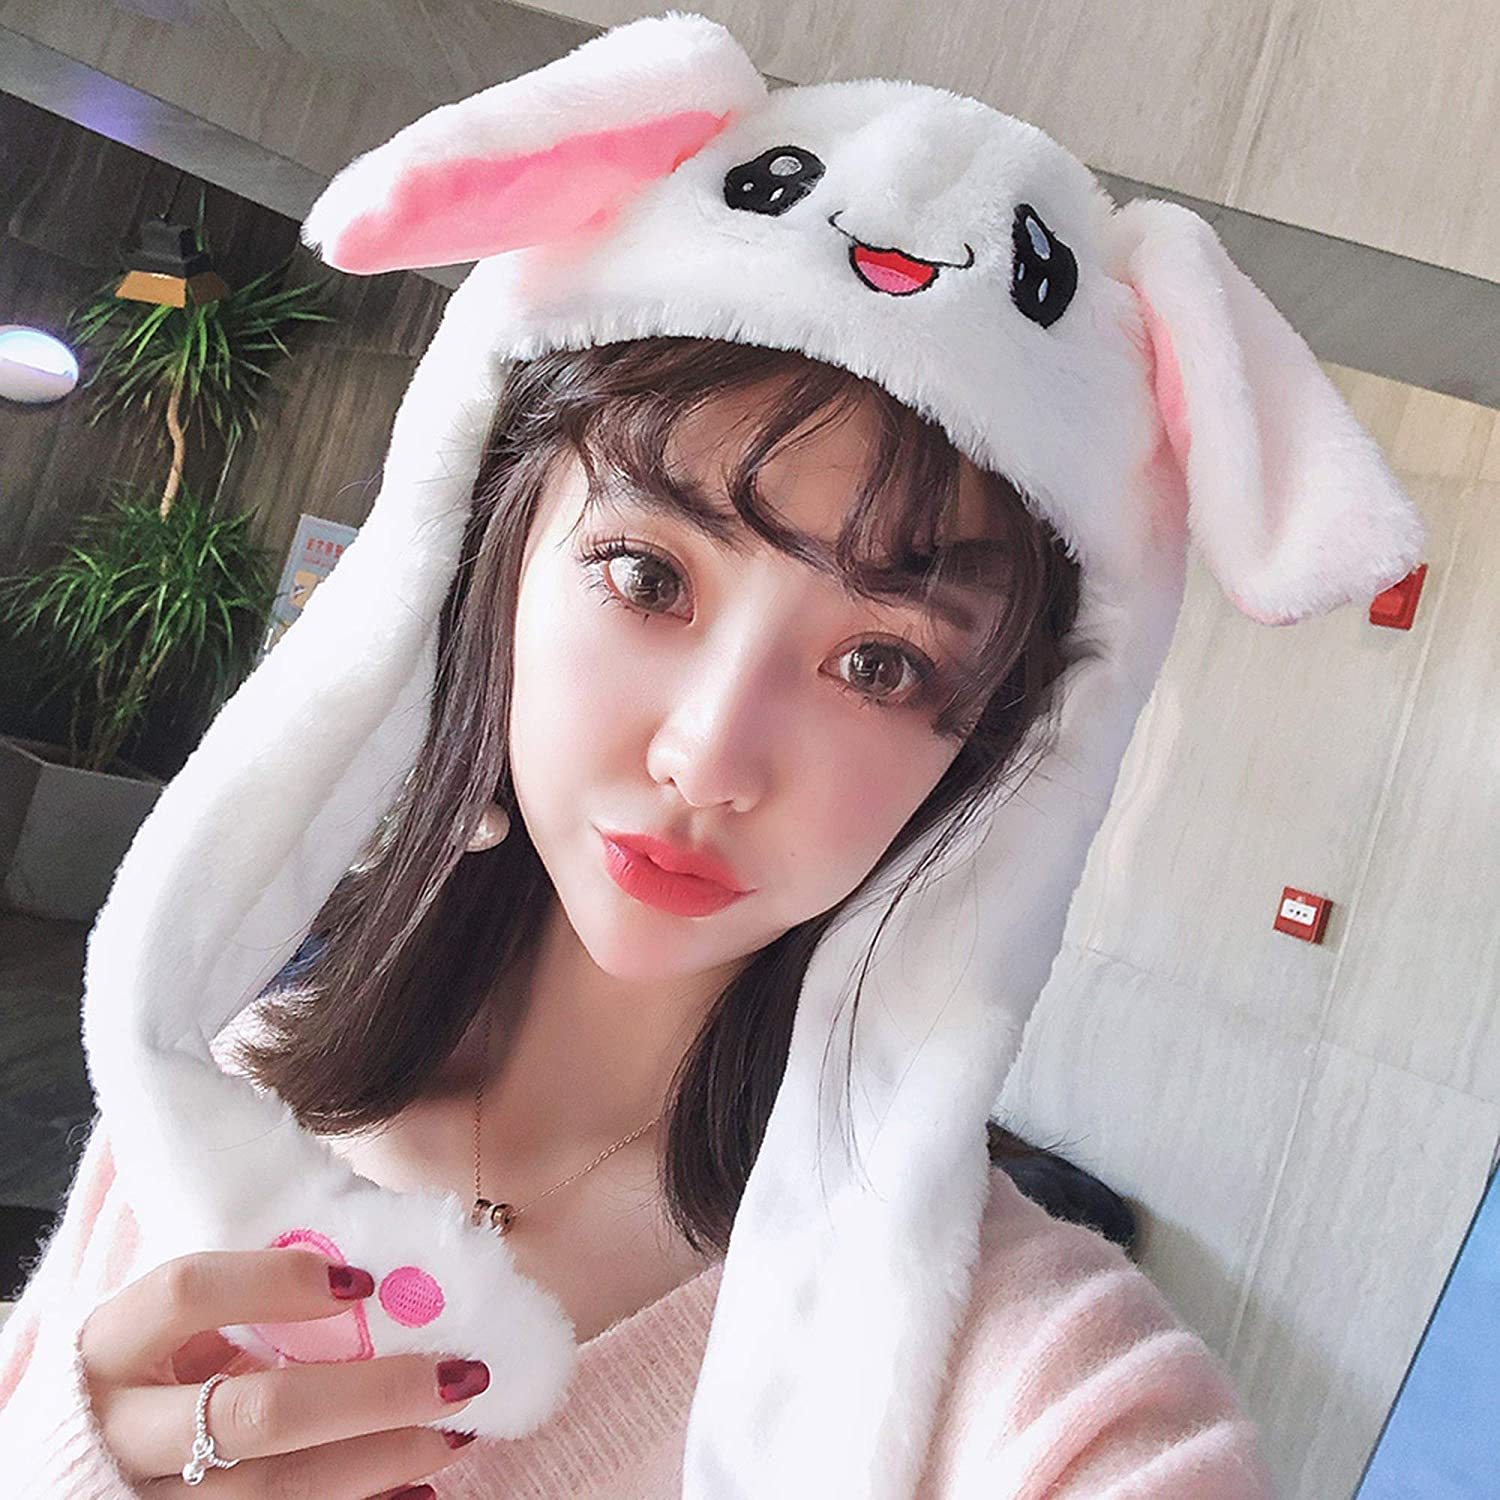 White Rabbit Floppy Funny Plush Animal Hat Easter Aadults Cosplay Rabbit Ear Moving kids Crazy Bunny Hat Moving Ears Pokemon Dancing Bunny Silly Kids Hat 9108TDCQ Moving Ears Hat